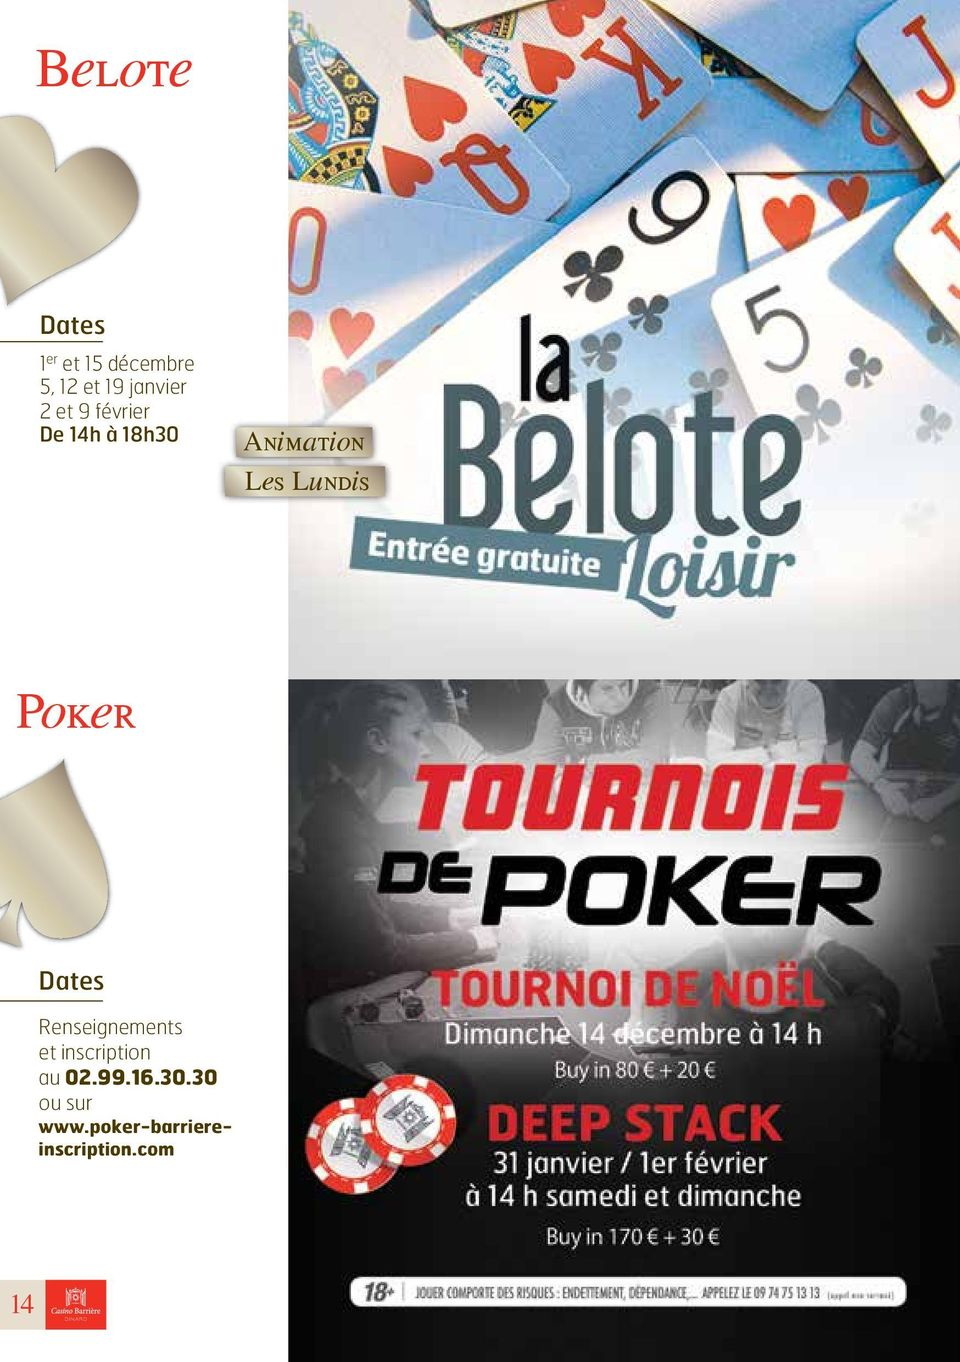 Poker Dates Renseignements et inscription au 02.99.